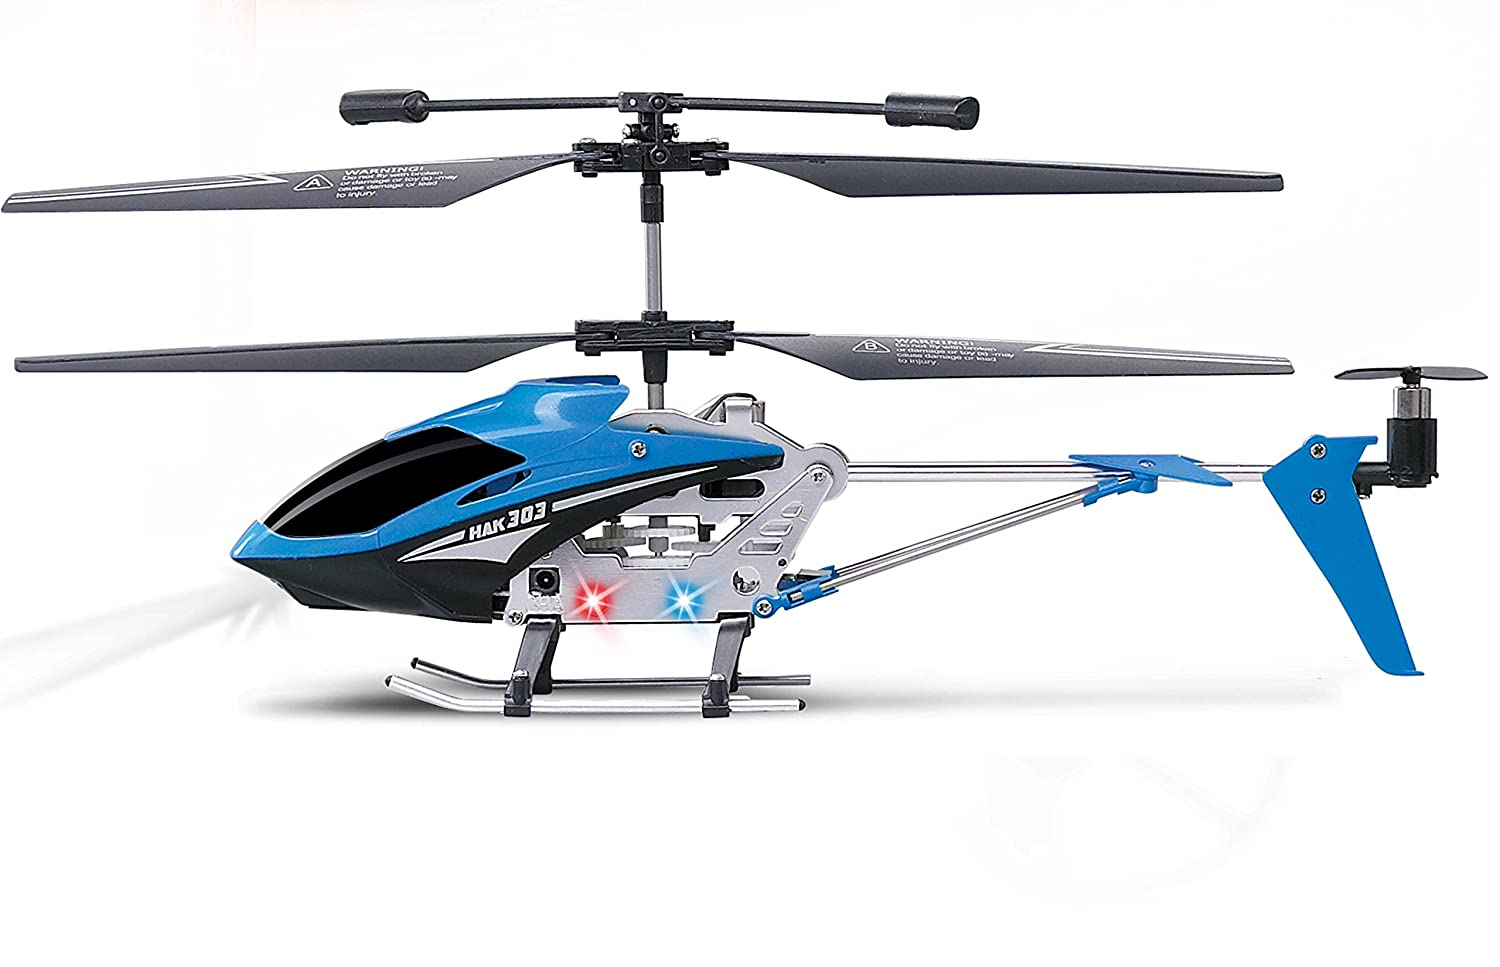 Haktoys HAK303 Infrared Control 3.5 Channel 9'' RC Helicopter with Gyroscope Stabilization & LED Lights